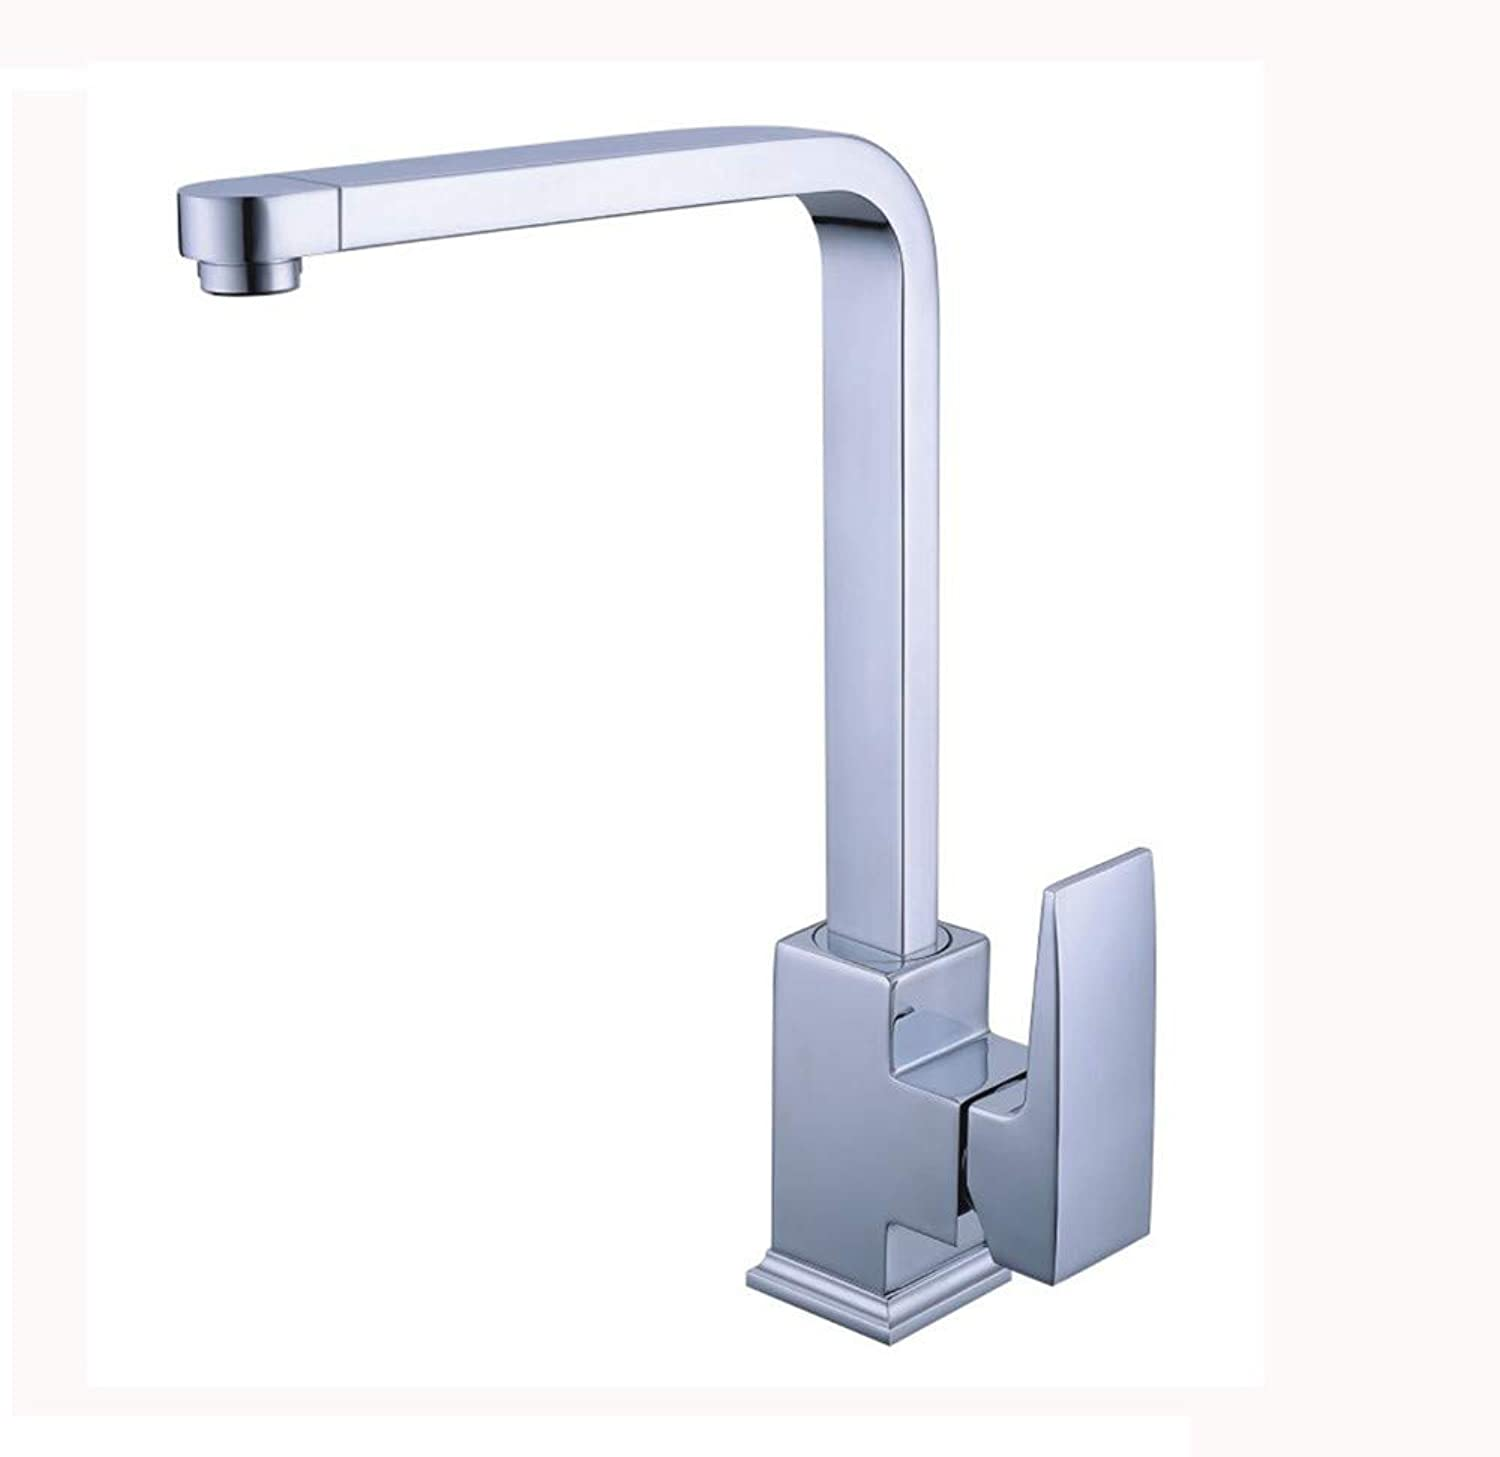 Faucet Sanitary Ware Plumbing Hardware hot and Cold Water Basin Kitchen Faucet